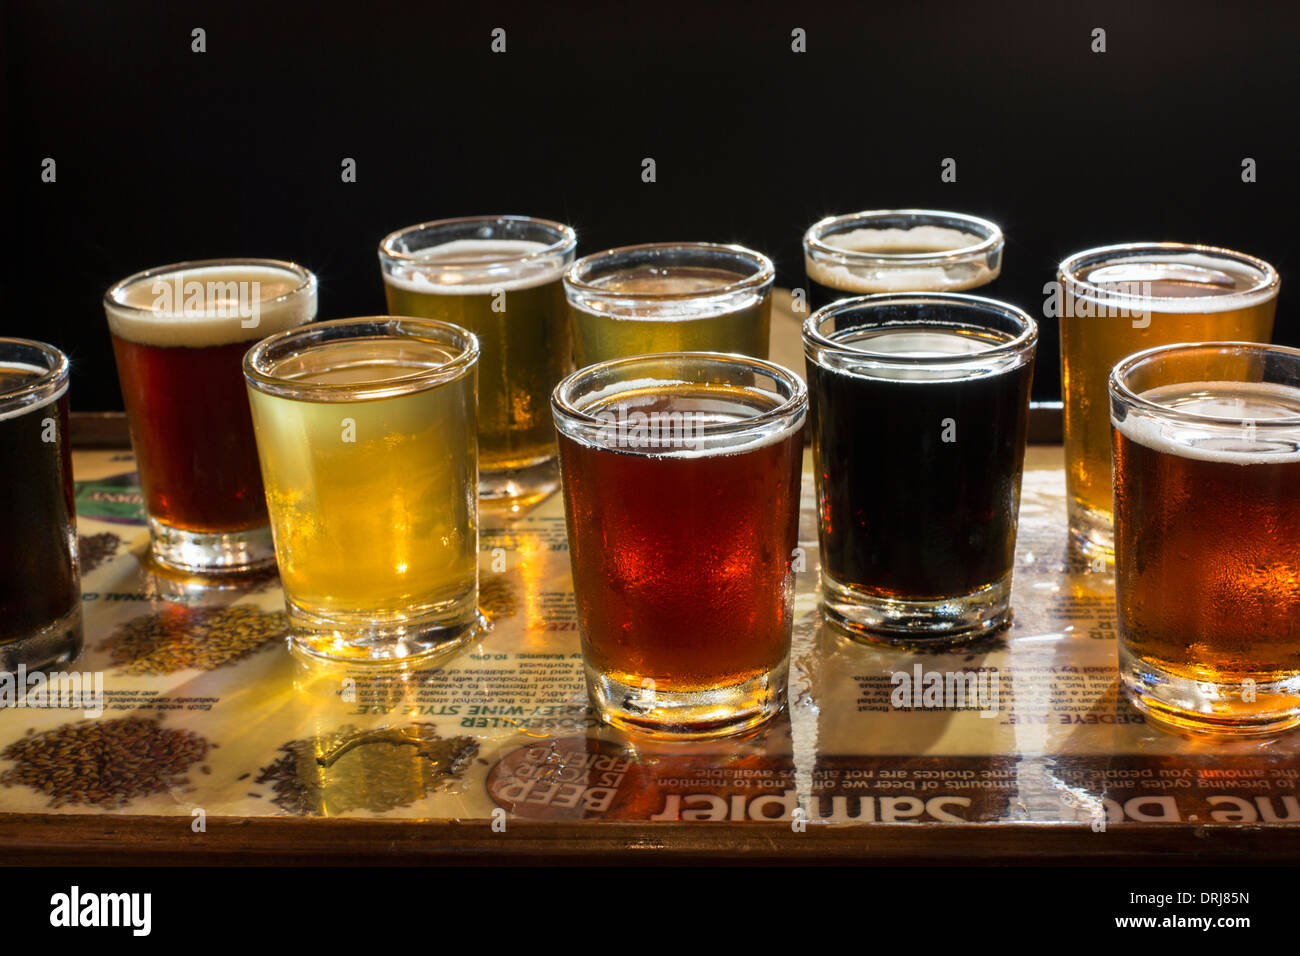 flight of beers for tasting in a brew pub - Stock Image